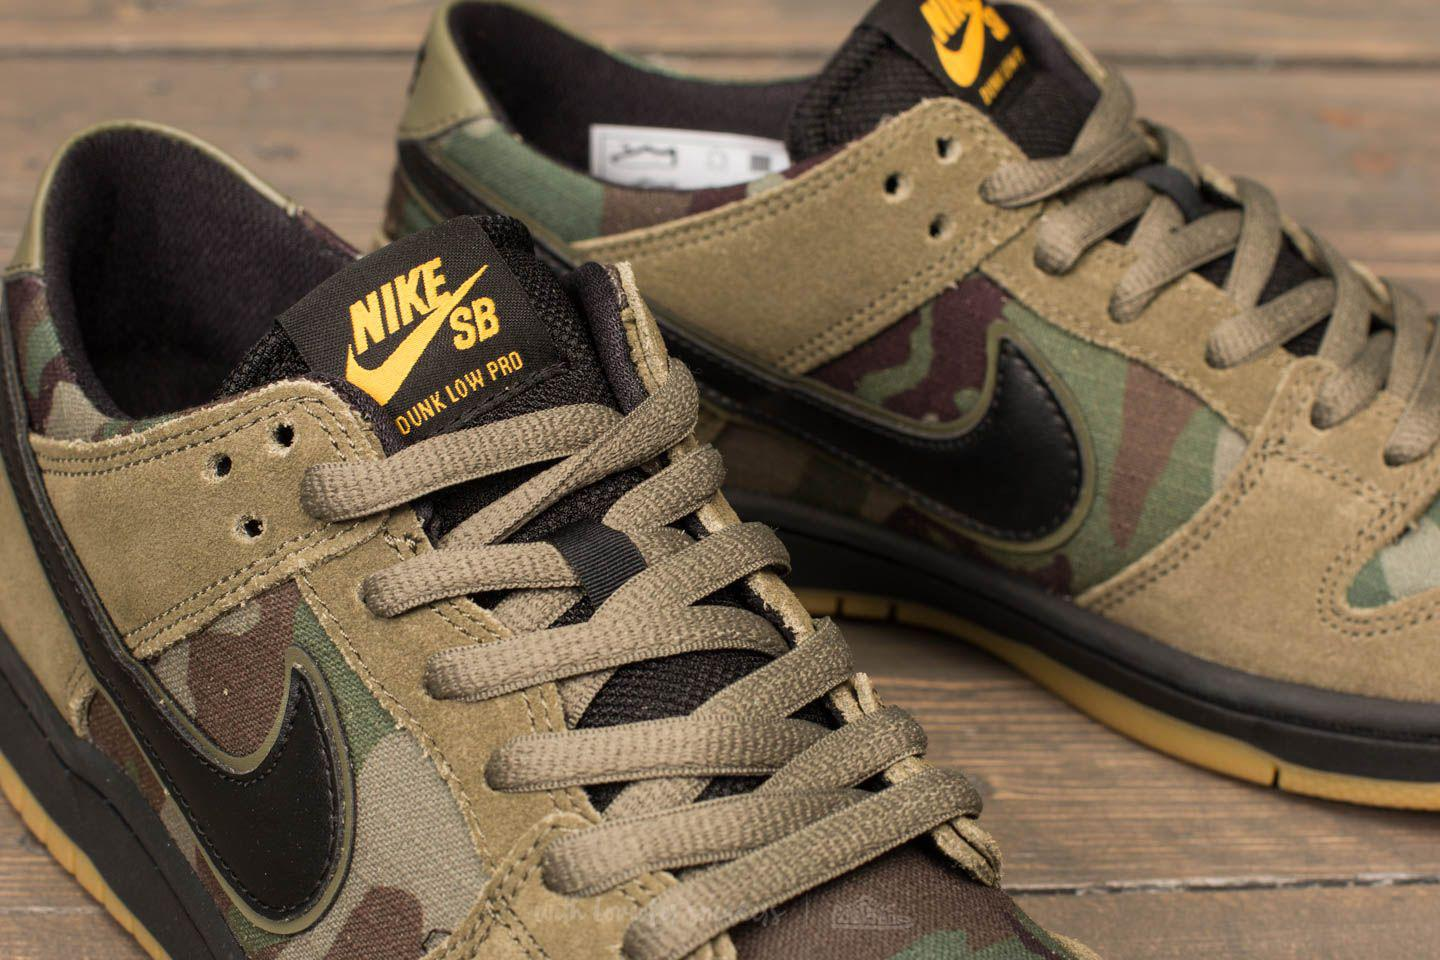 e7798827bd962a ... forty two skateboard shop b738f 2aff5  amazon lyst nike sb zoom dunk  low pro medium olive black for men c7d32 38648